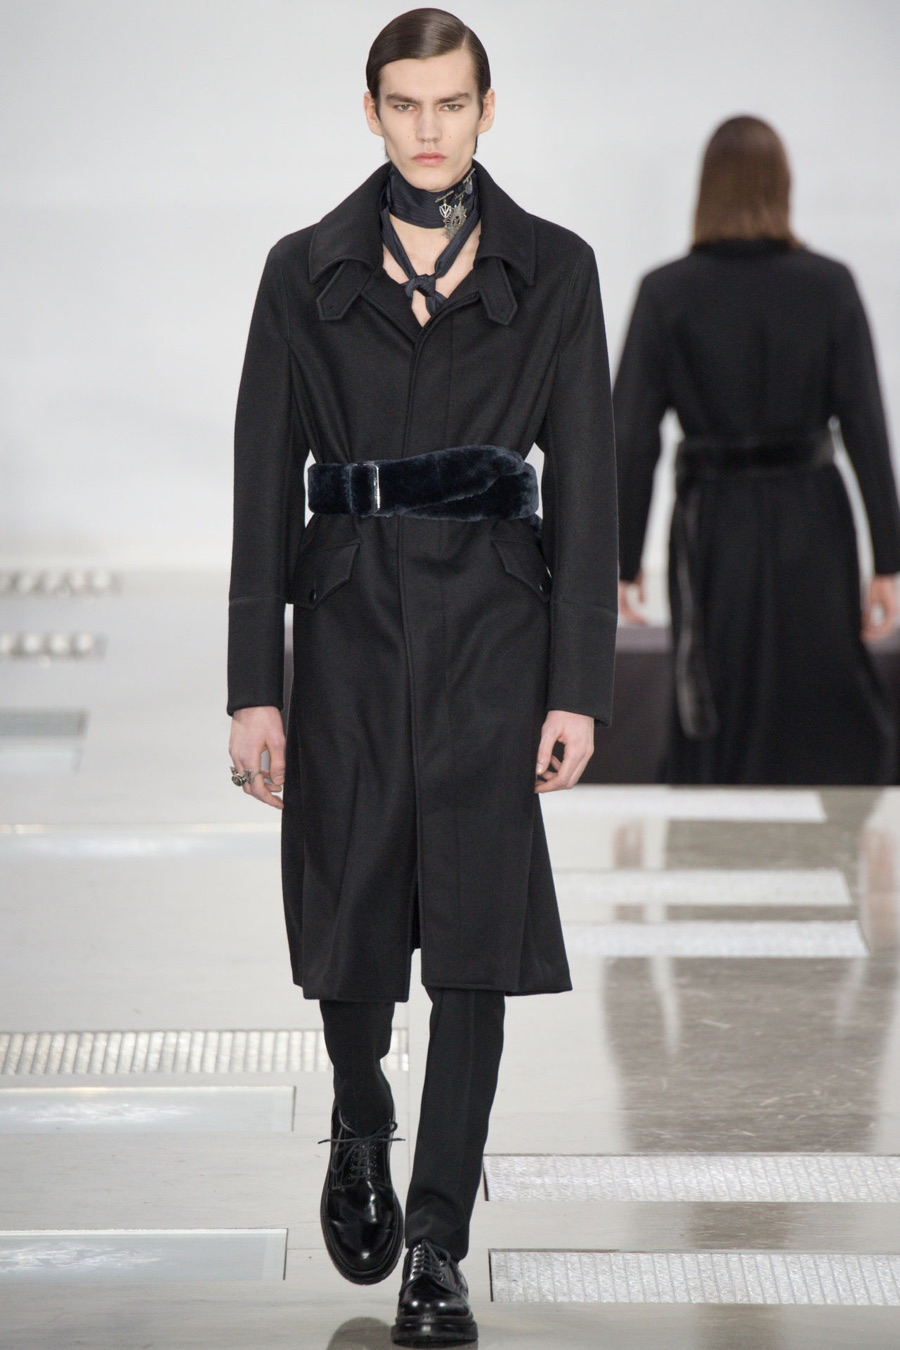 Collections MEN WINTER On March 4th , Clare Waight Keller unveiled the Givenchy Fall Winter collection. Sharp-edged silhouettes cut through city streets, their shadows casting stark contours in metallic urban lights.